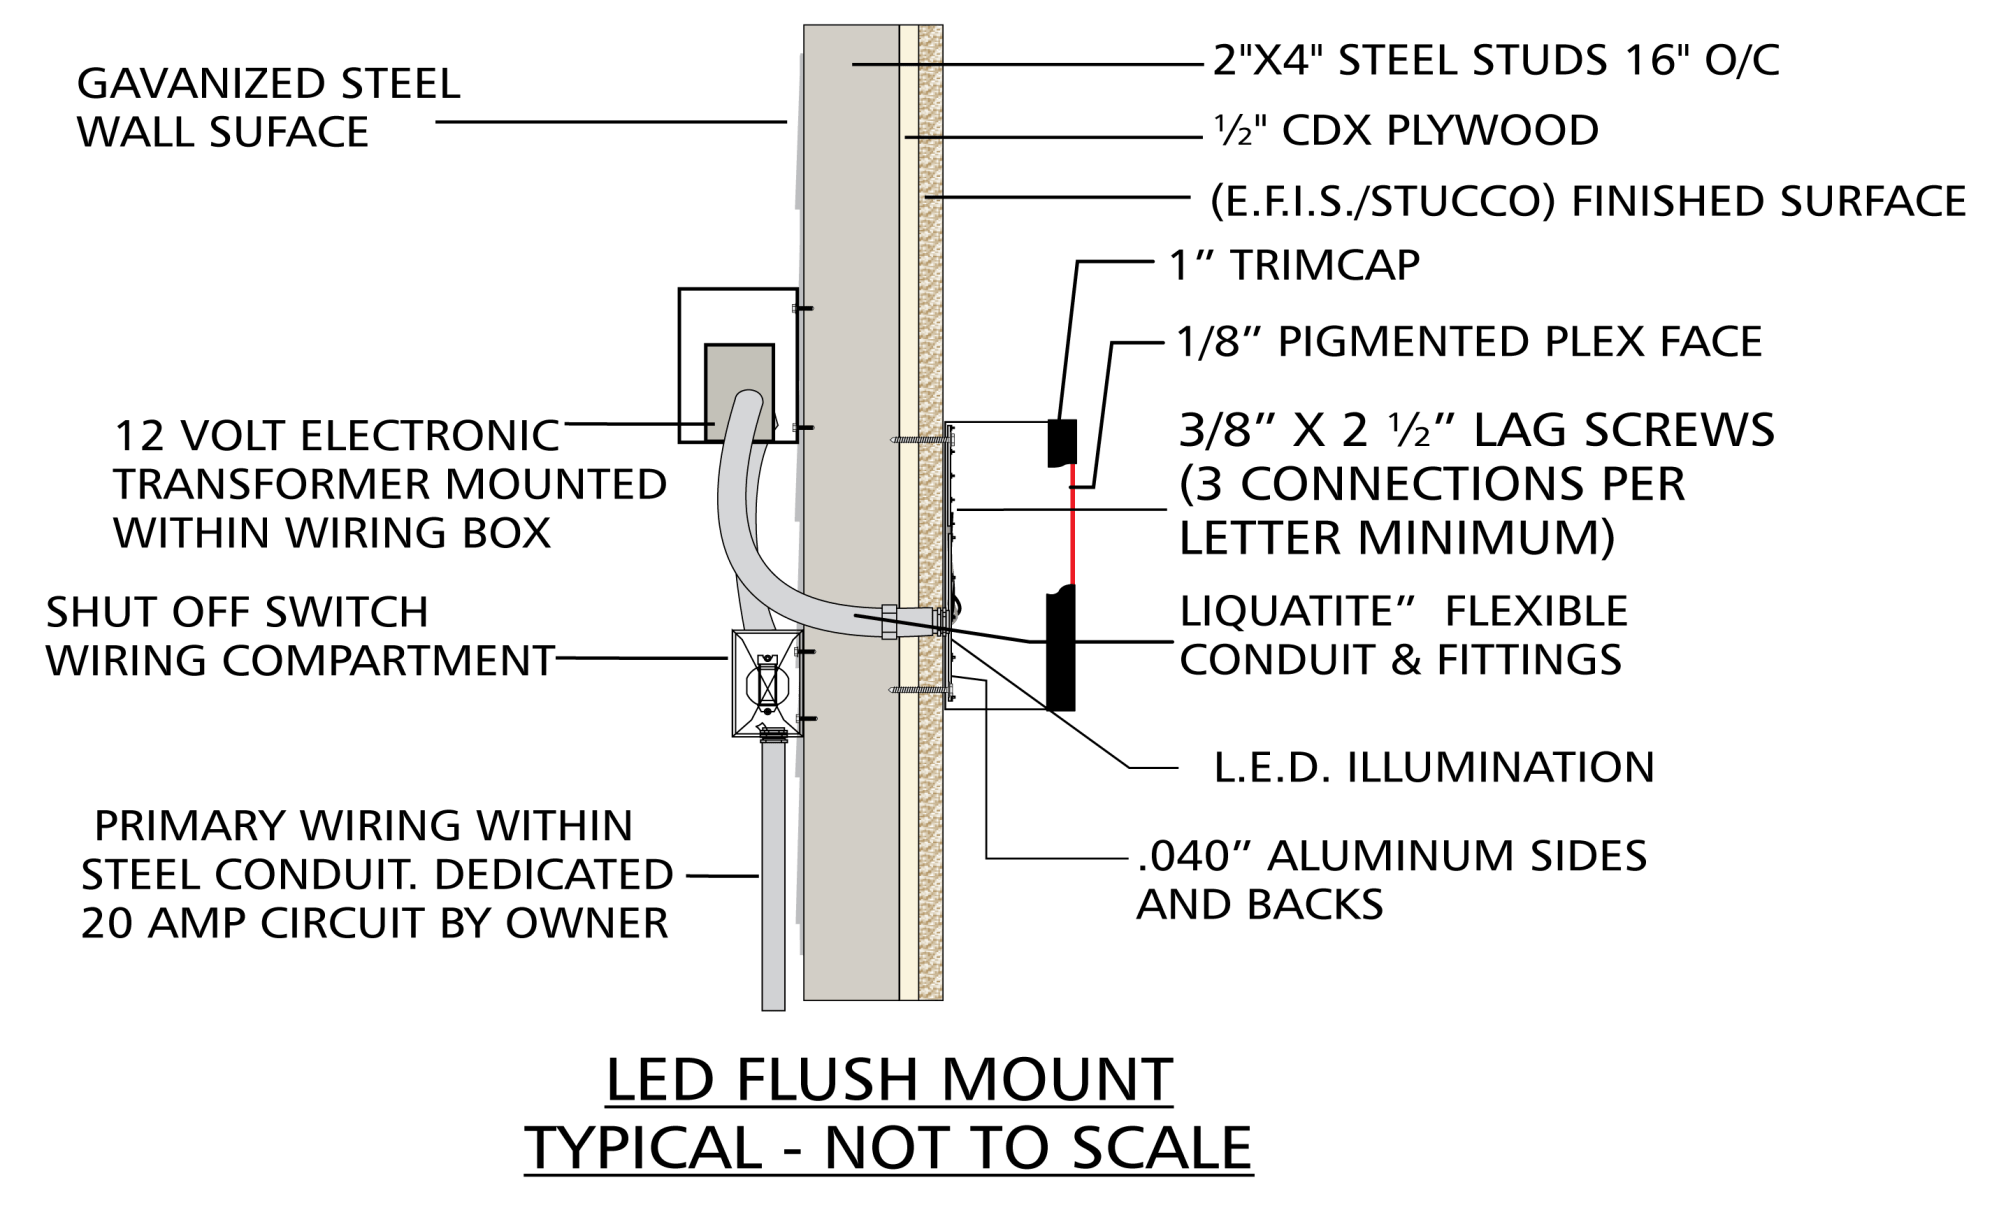 hight resolution of channel lettering sign wiring diagram wiring diagram userchannel lettering sign wiring diagram wiring diagram host channel